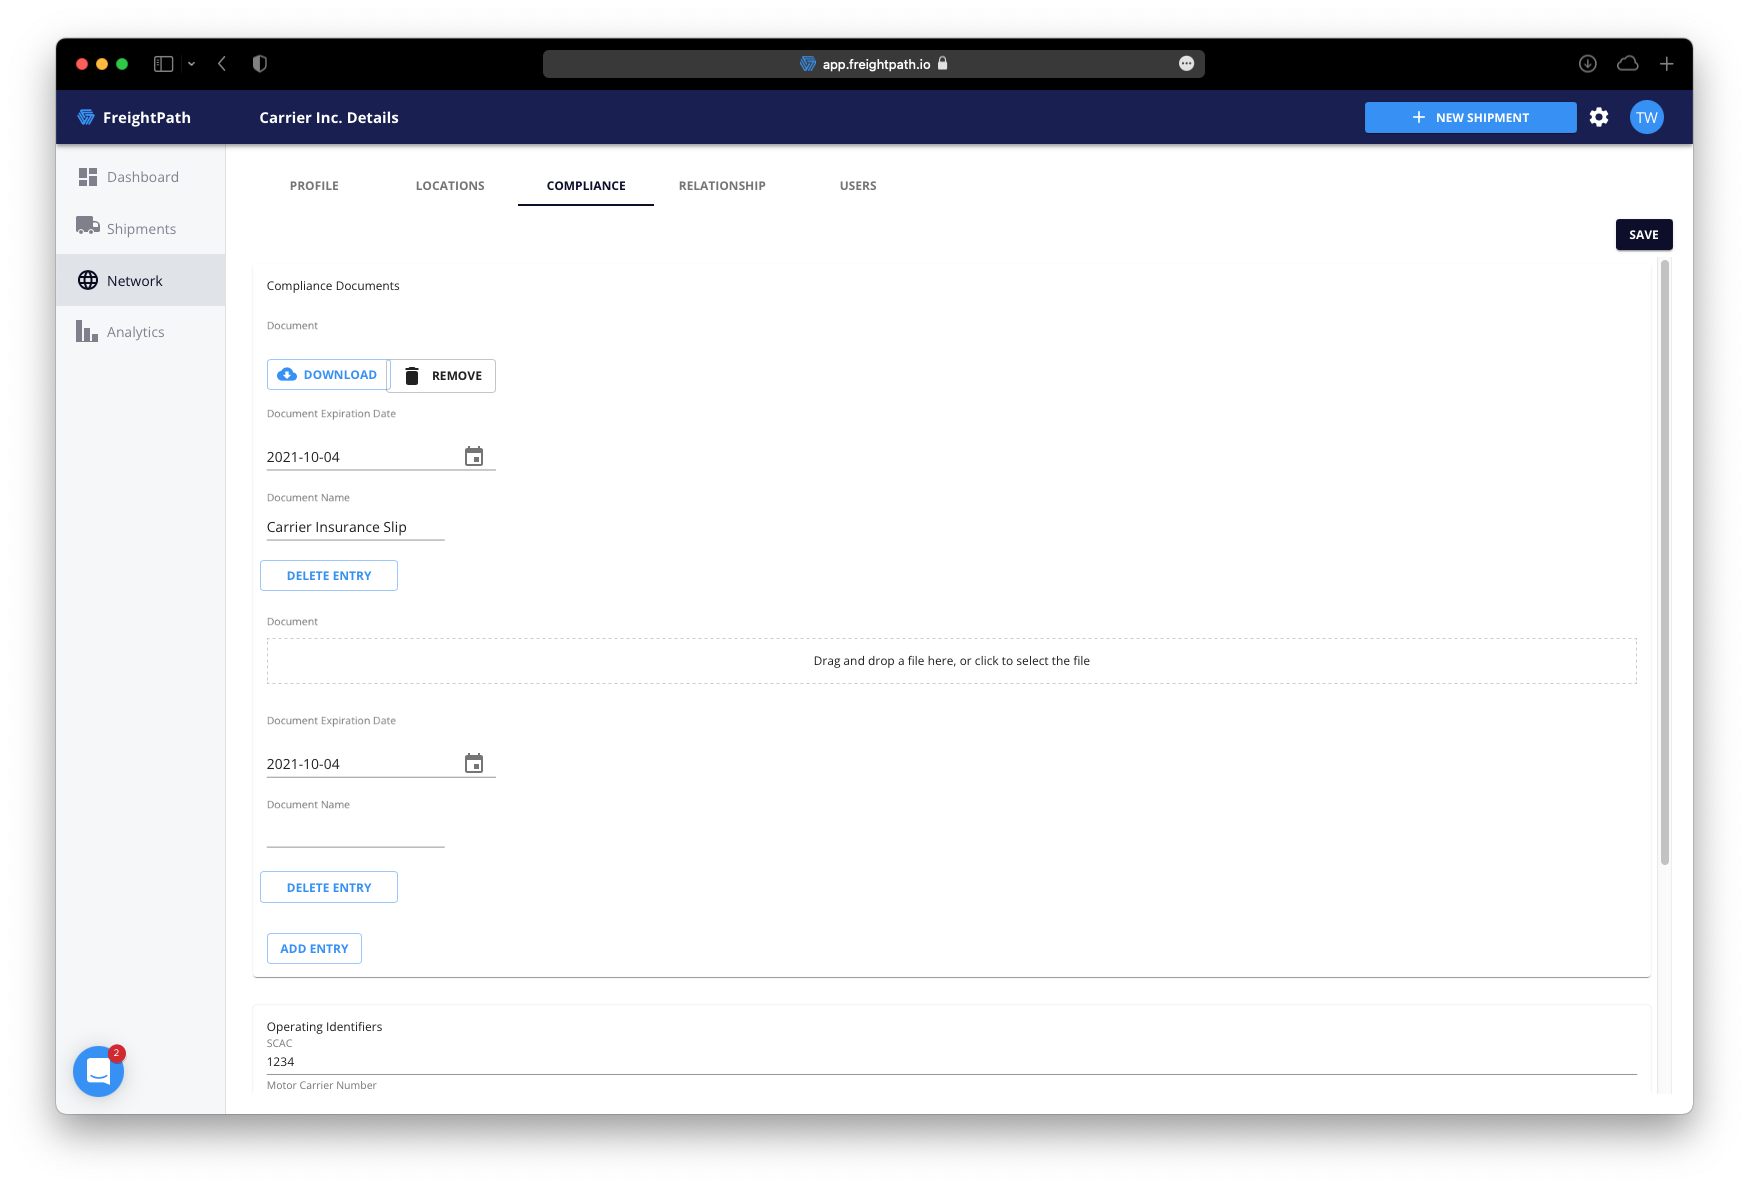 freightpath tms carrier compliance documents screenshot